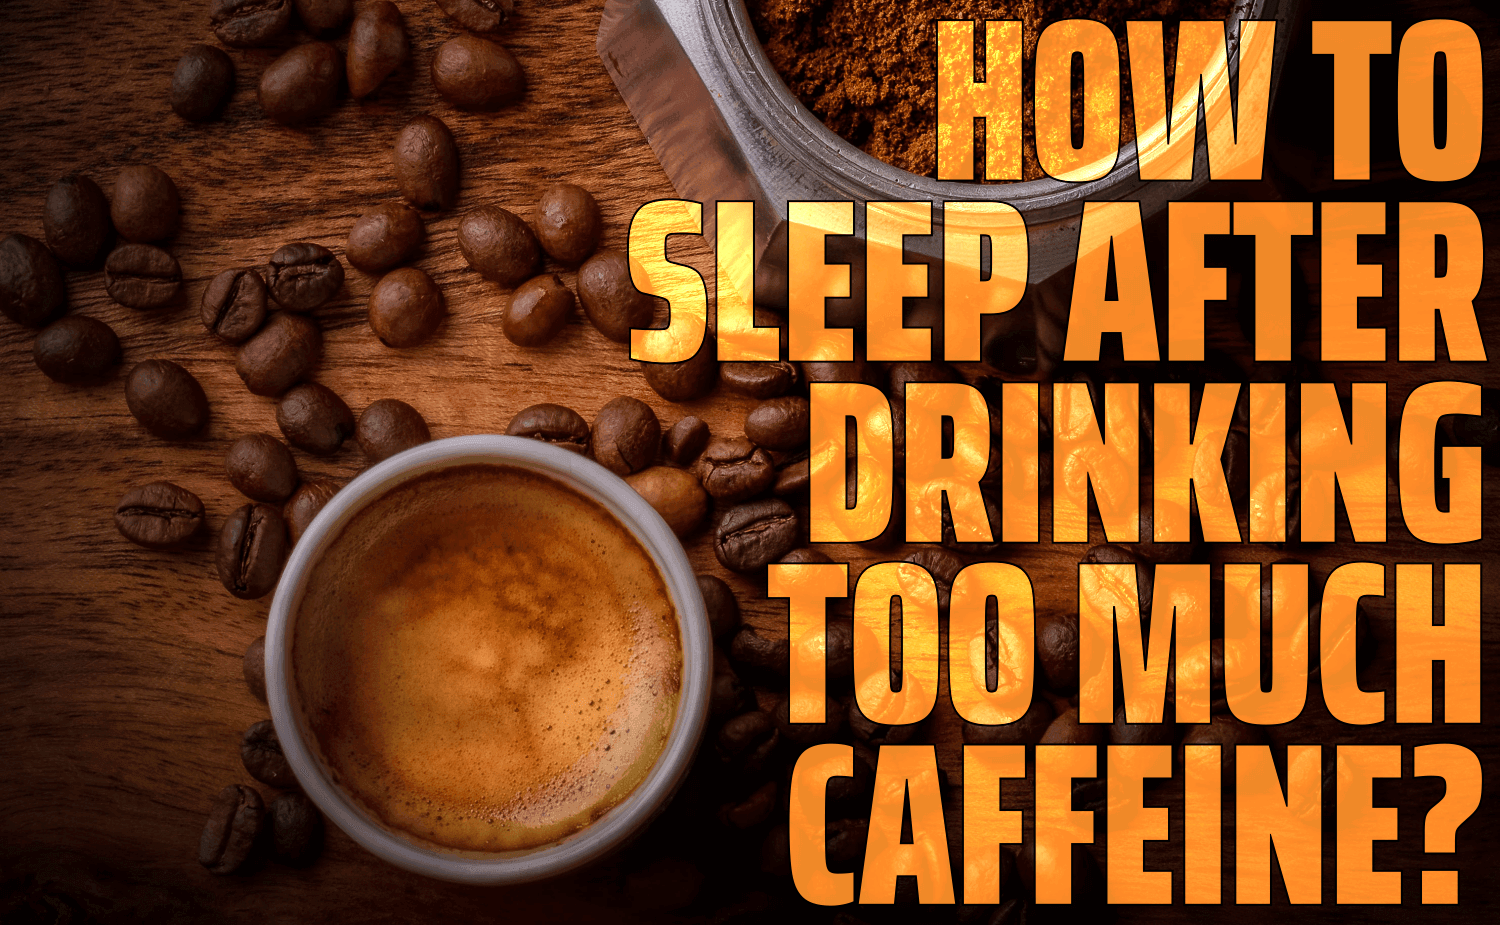 How To Sleep After Drinking Too Much Caffeine?